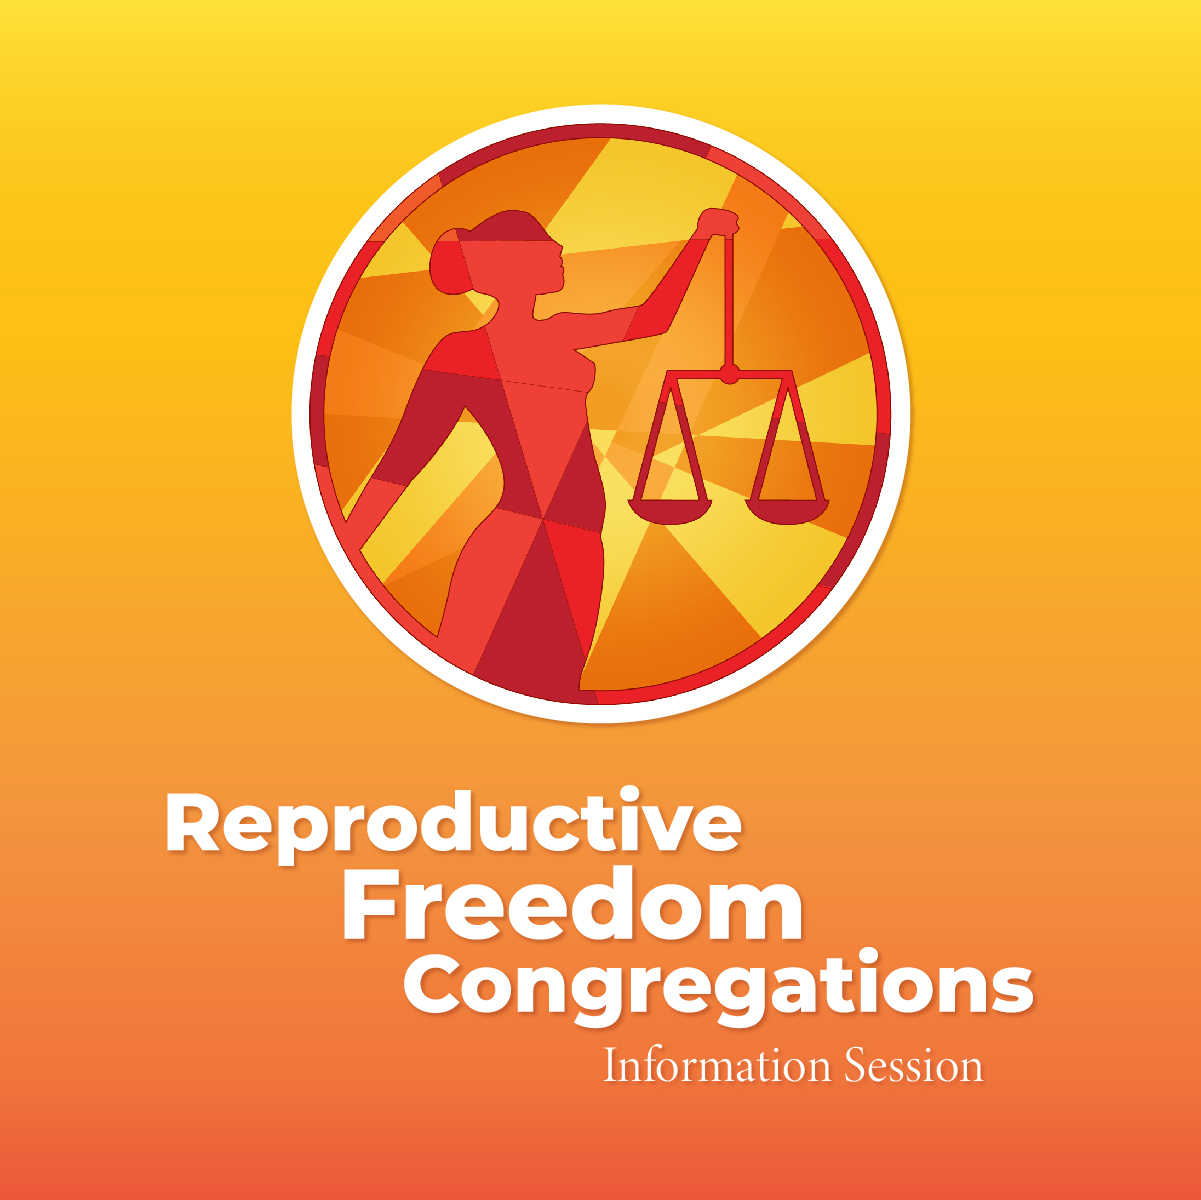 Image of Reproductive Freedom Congregations Logo - a silhouette of a woman holding justice scales with red, orange, and yellow stained glass panels in a circle. The logo is on a square of orange-yellow gradient. Text: Reproductive Freedom Congregations Information Session